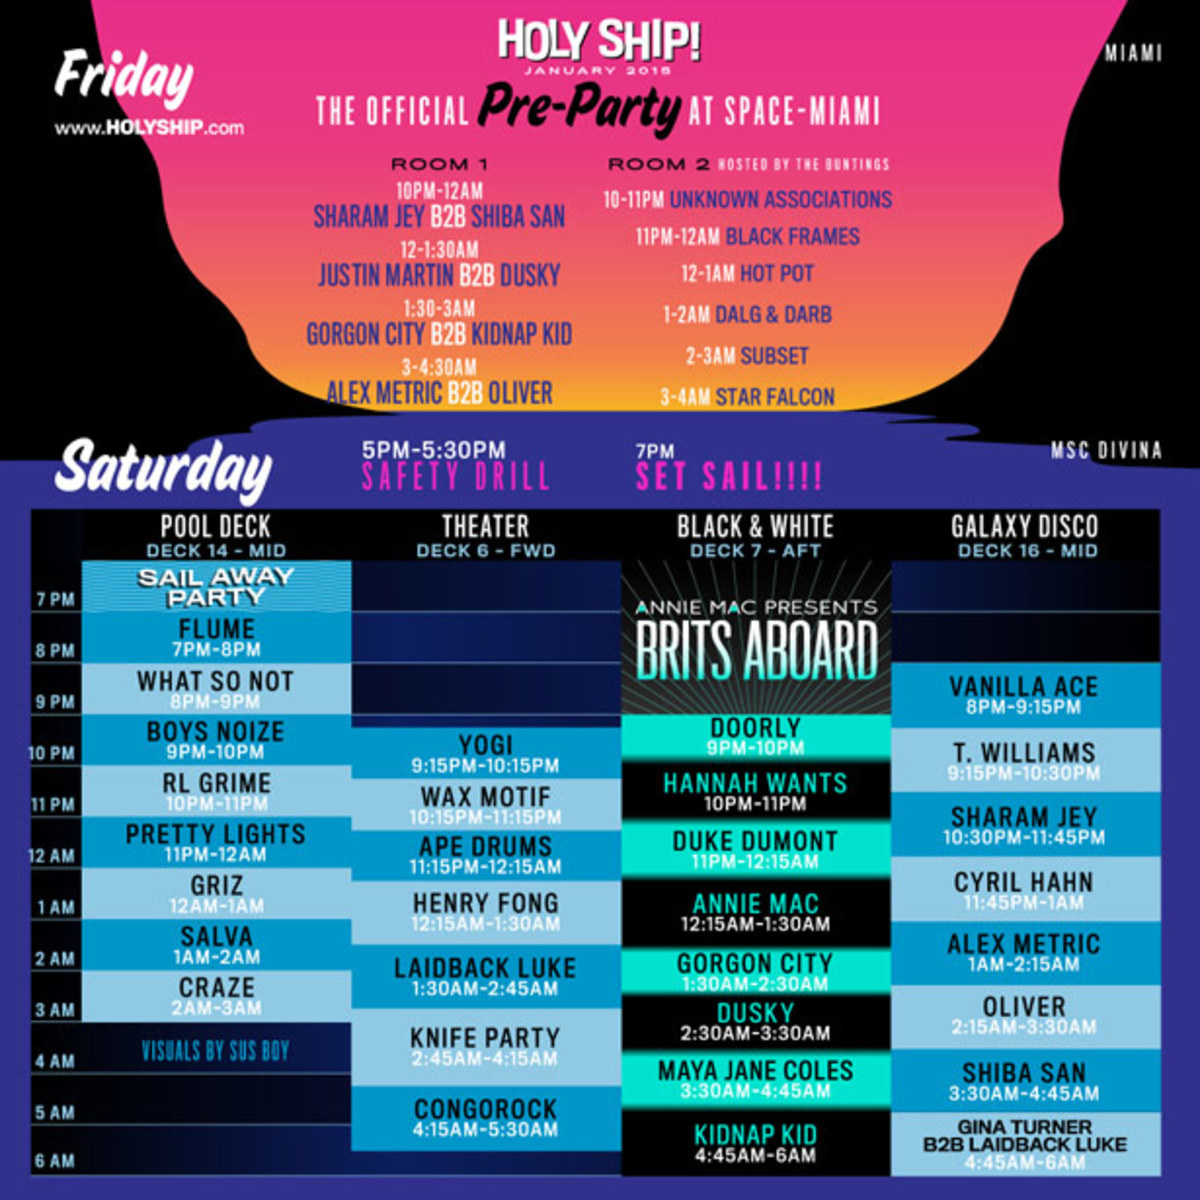 HARD's Holy Ship Lineup 2015 Announcement